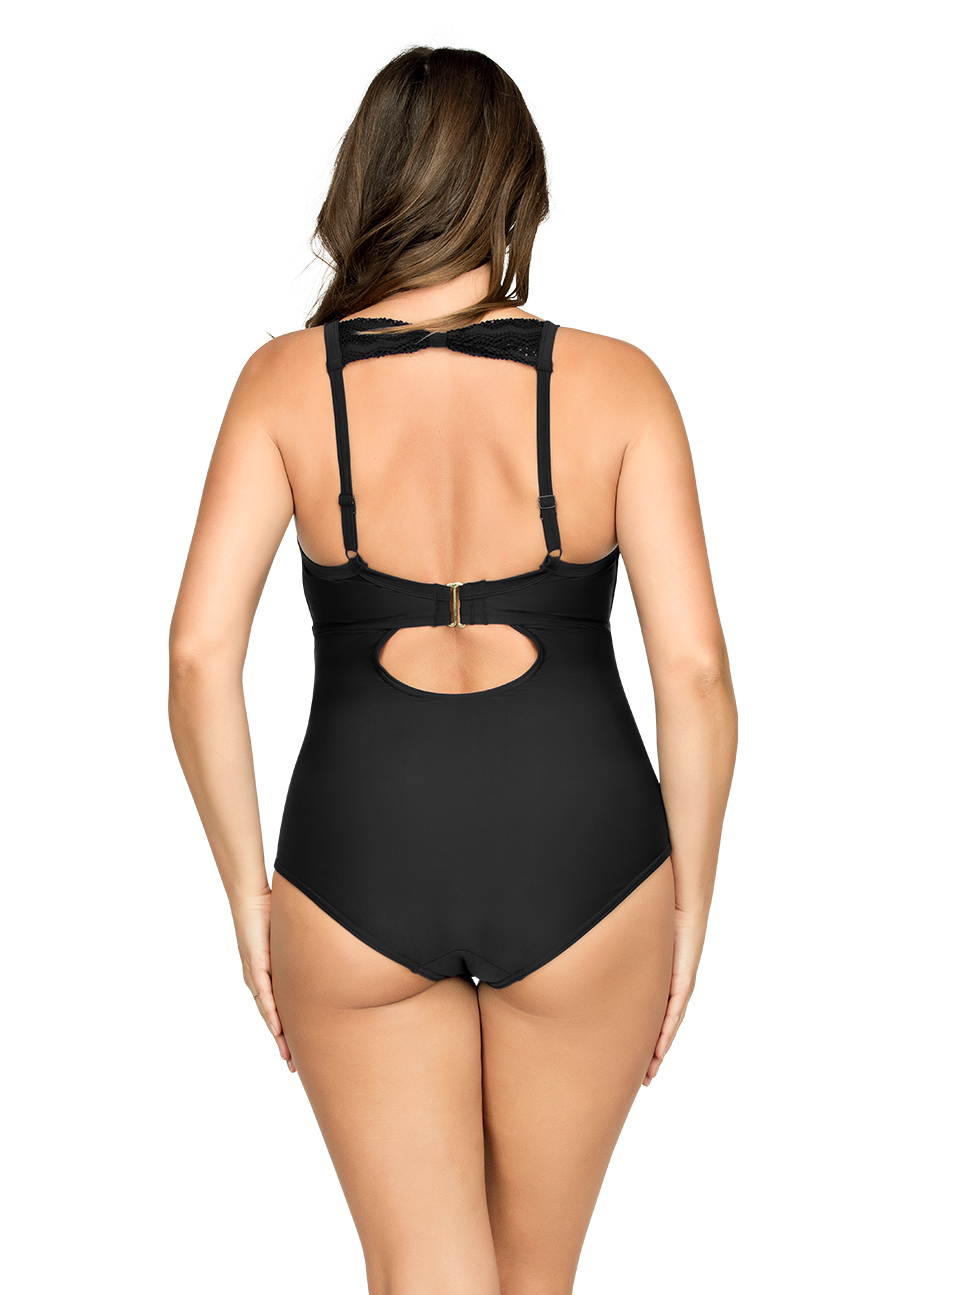 PARFAIT Keira OnePieceSwimsuitS8076 Black Back - Keira One-Piece Swimsuit Black S8076